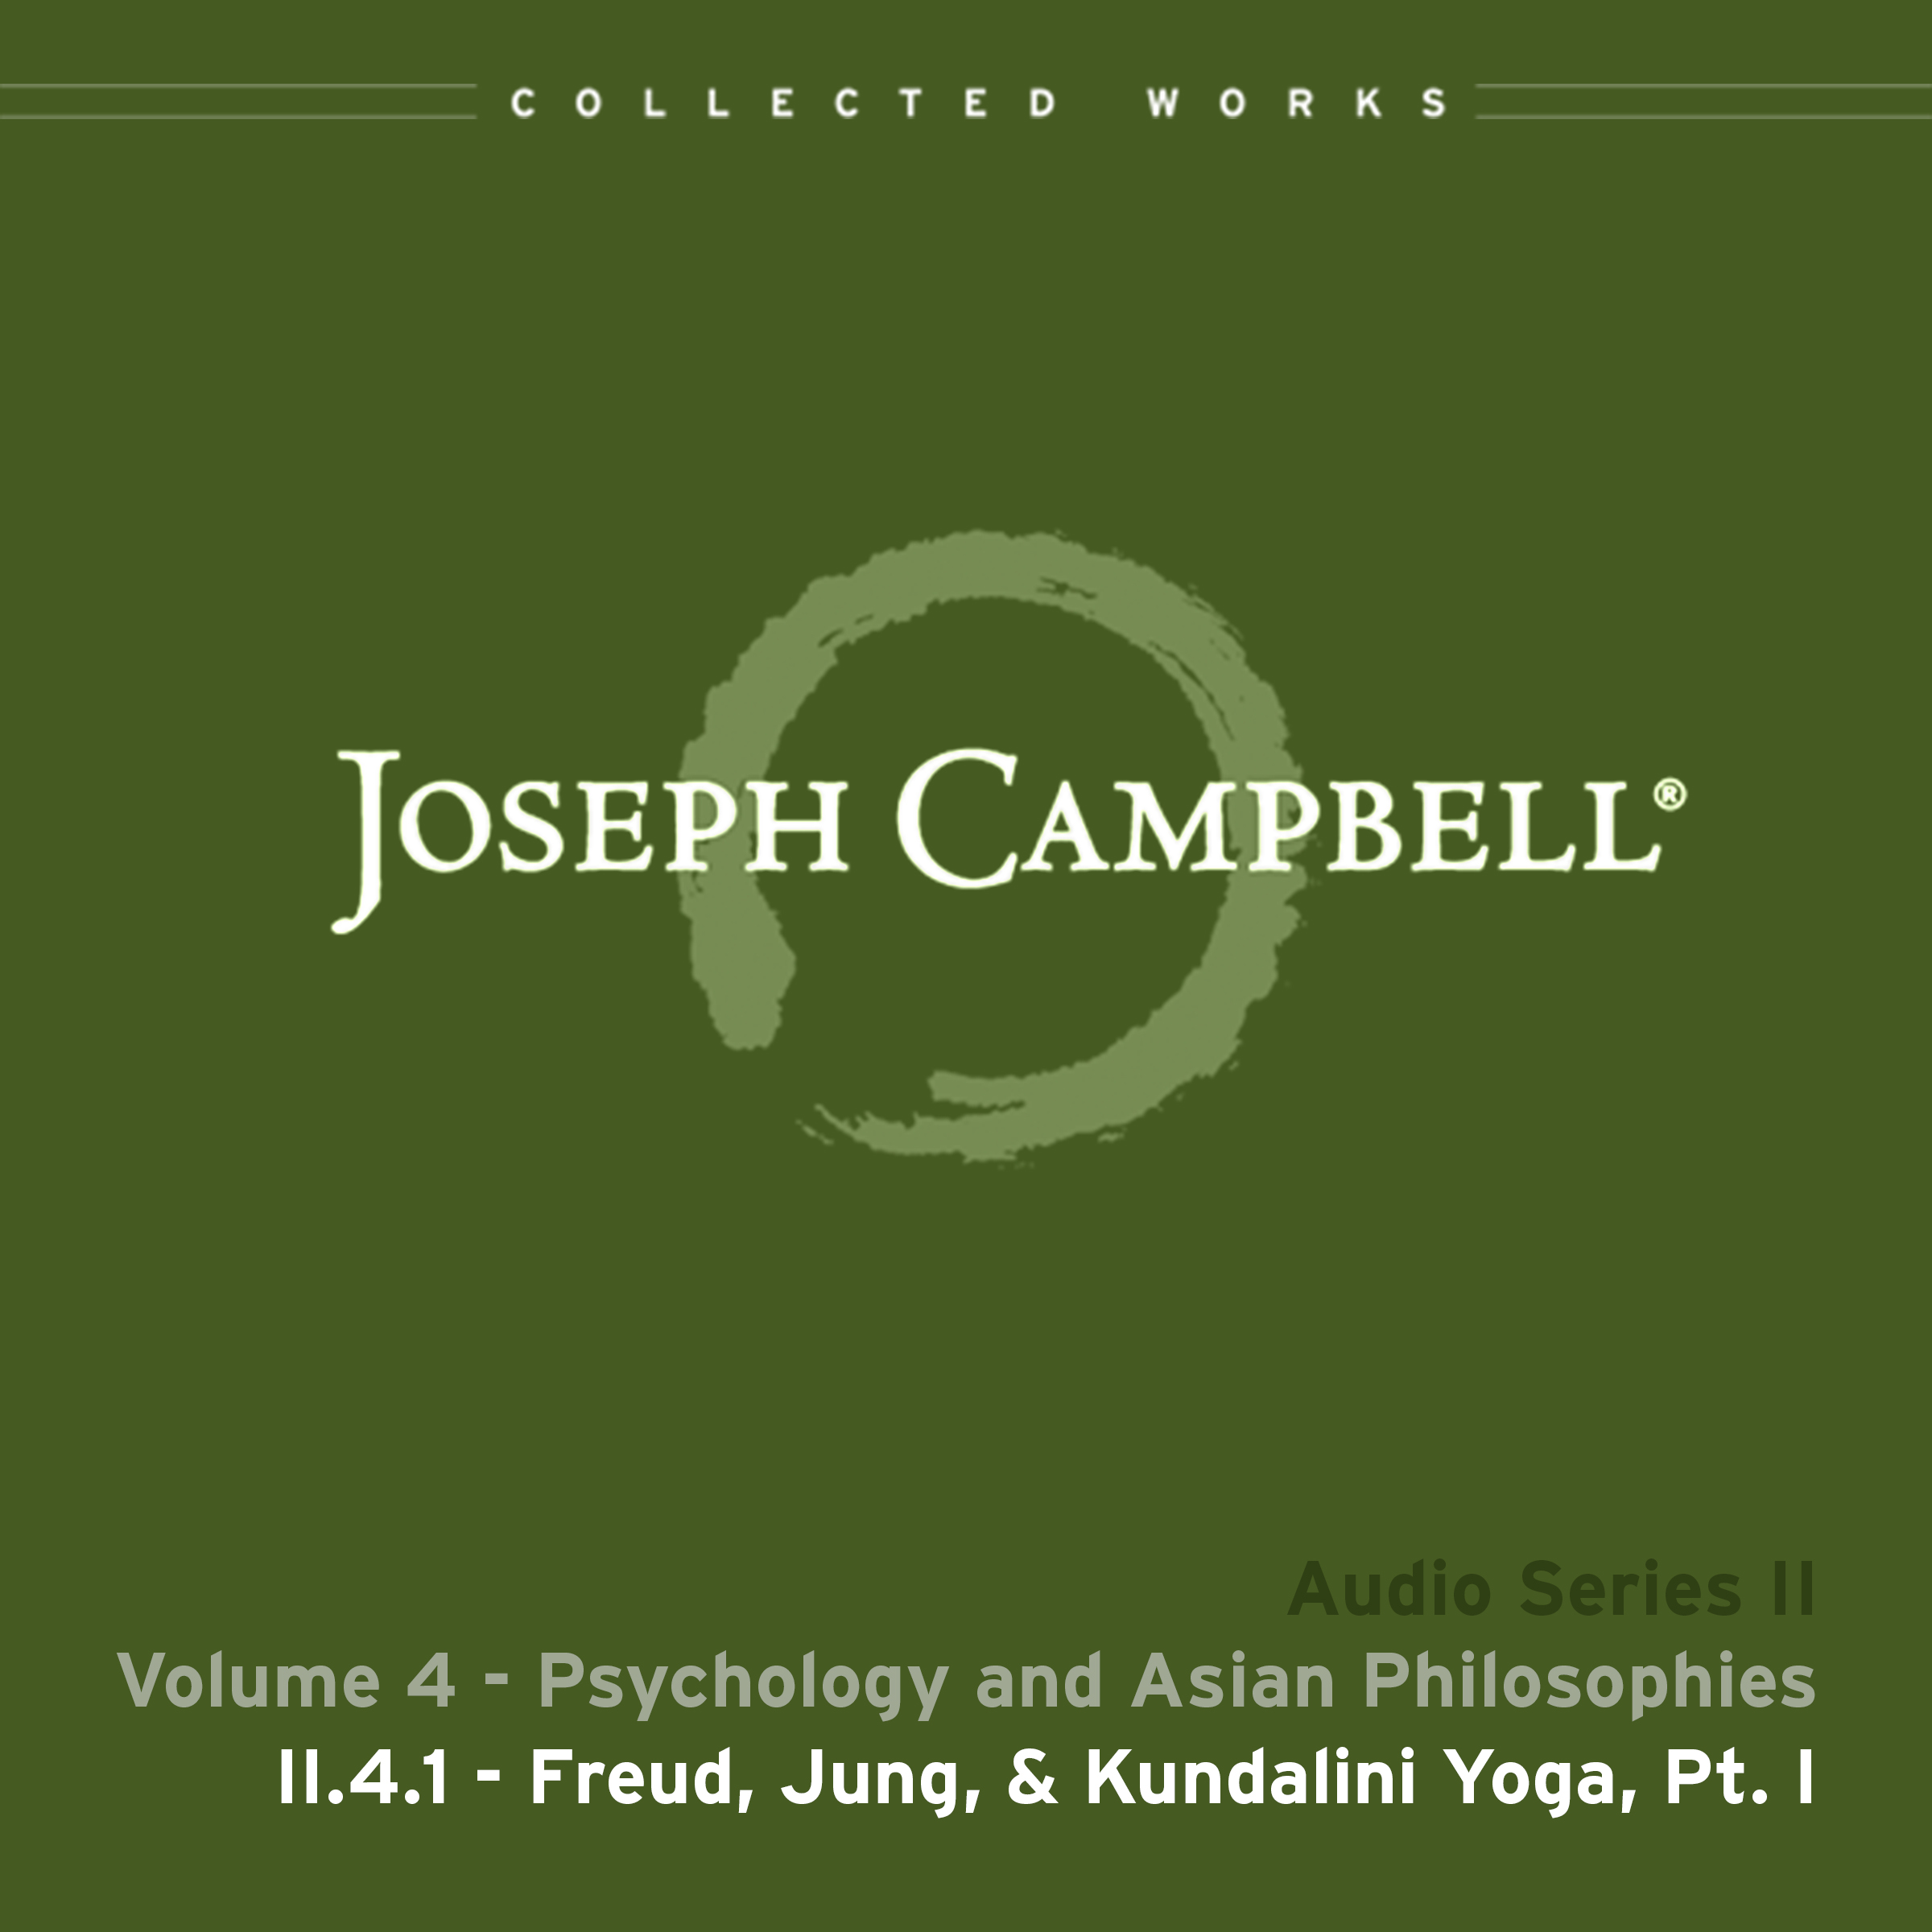 Audio: Lecture II.4.1 - Freud Jung & Kundalini Yoga Part 1